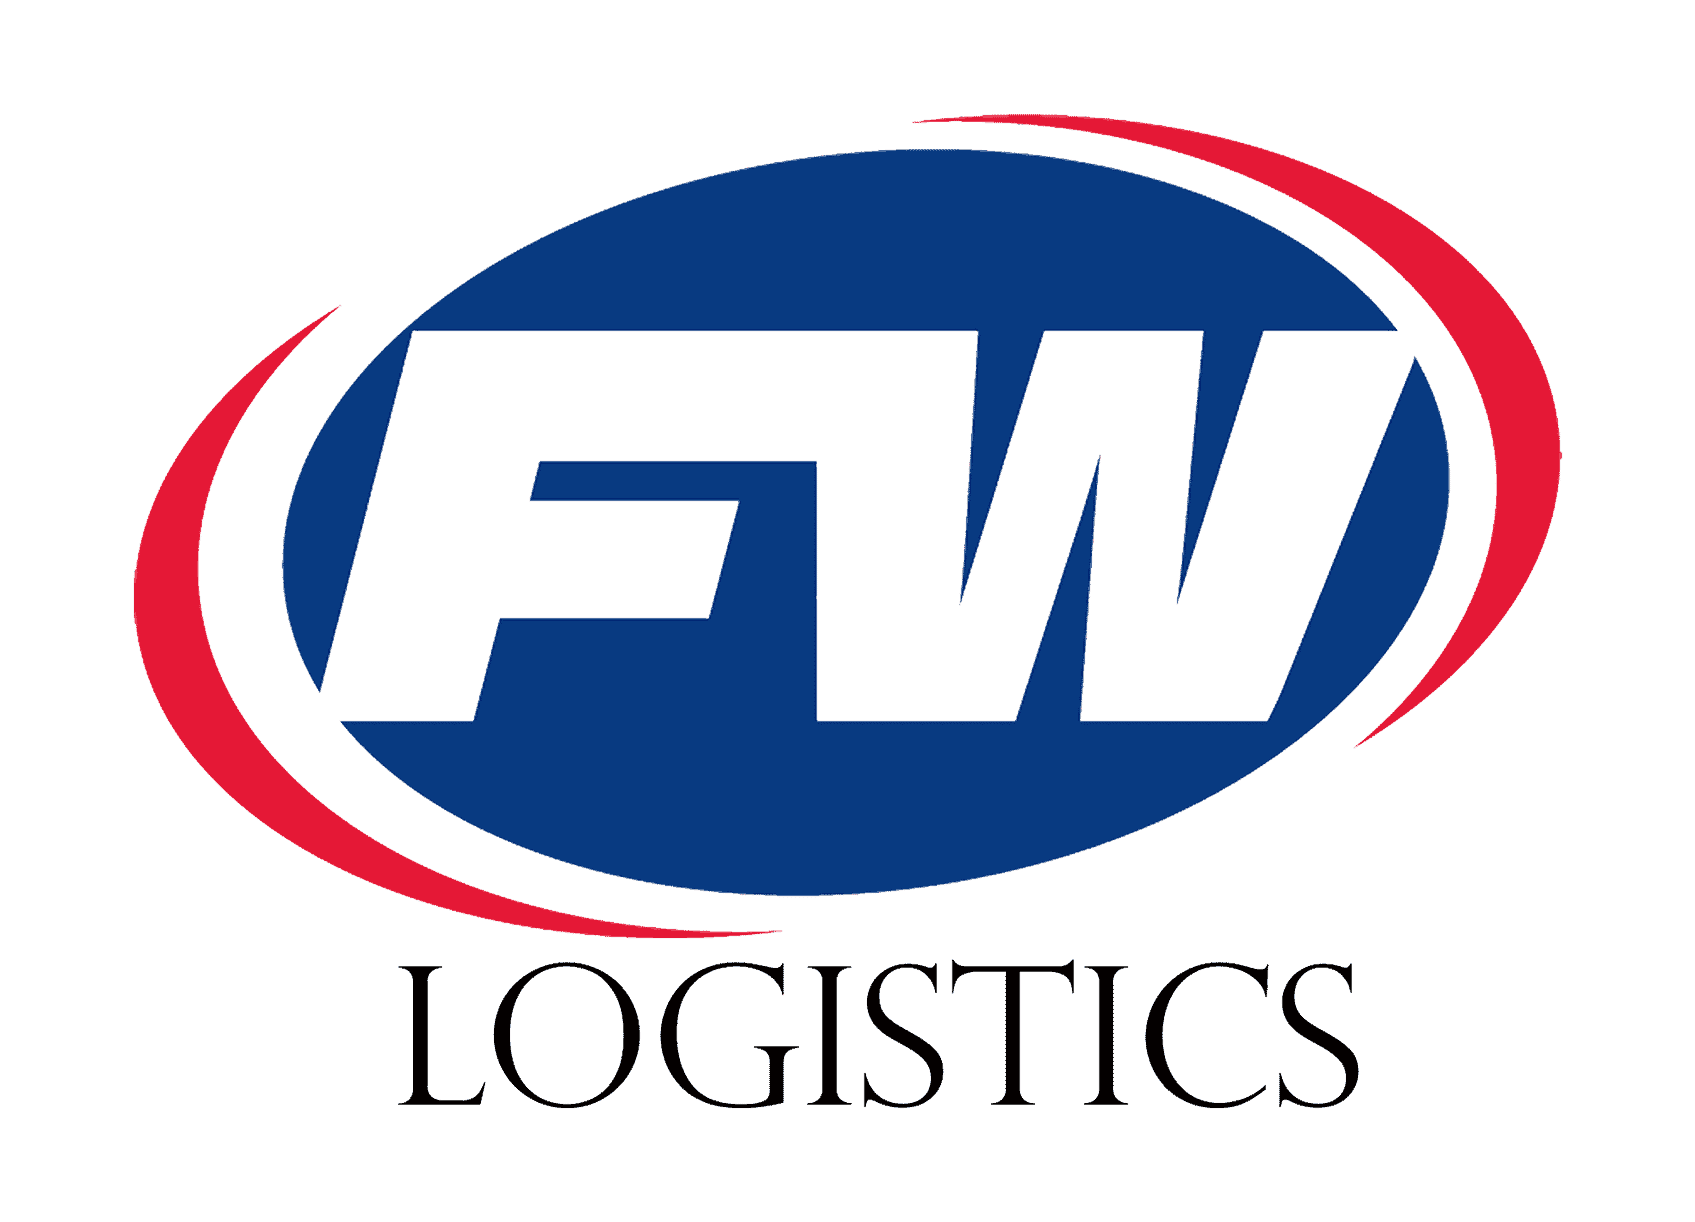 FW Logistics - Nationwide warehousing, logistics, and trucking for businesses that need flexible storage options.